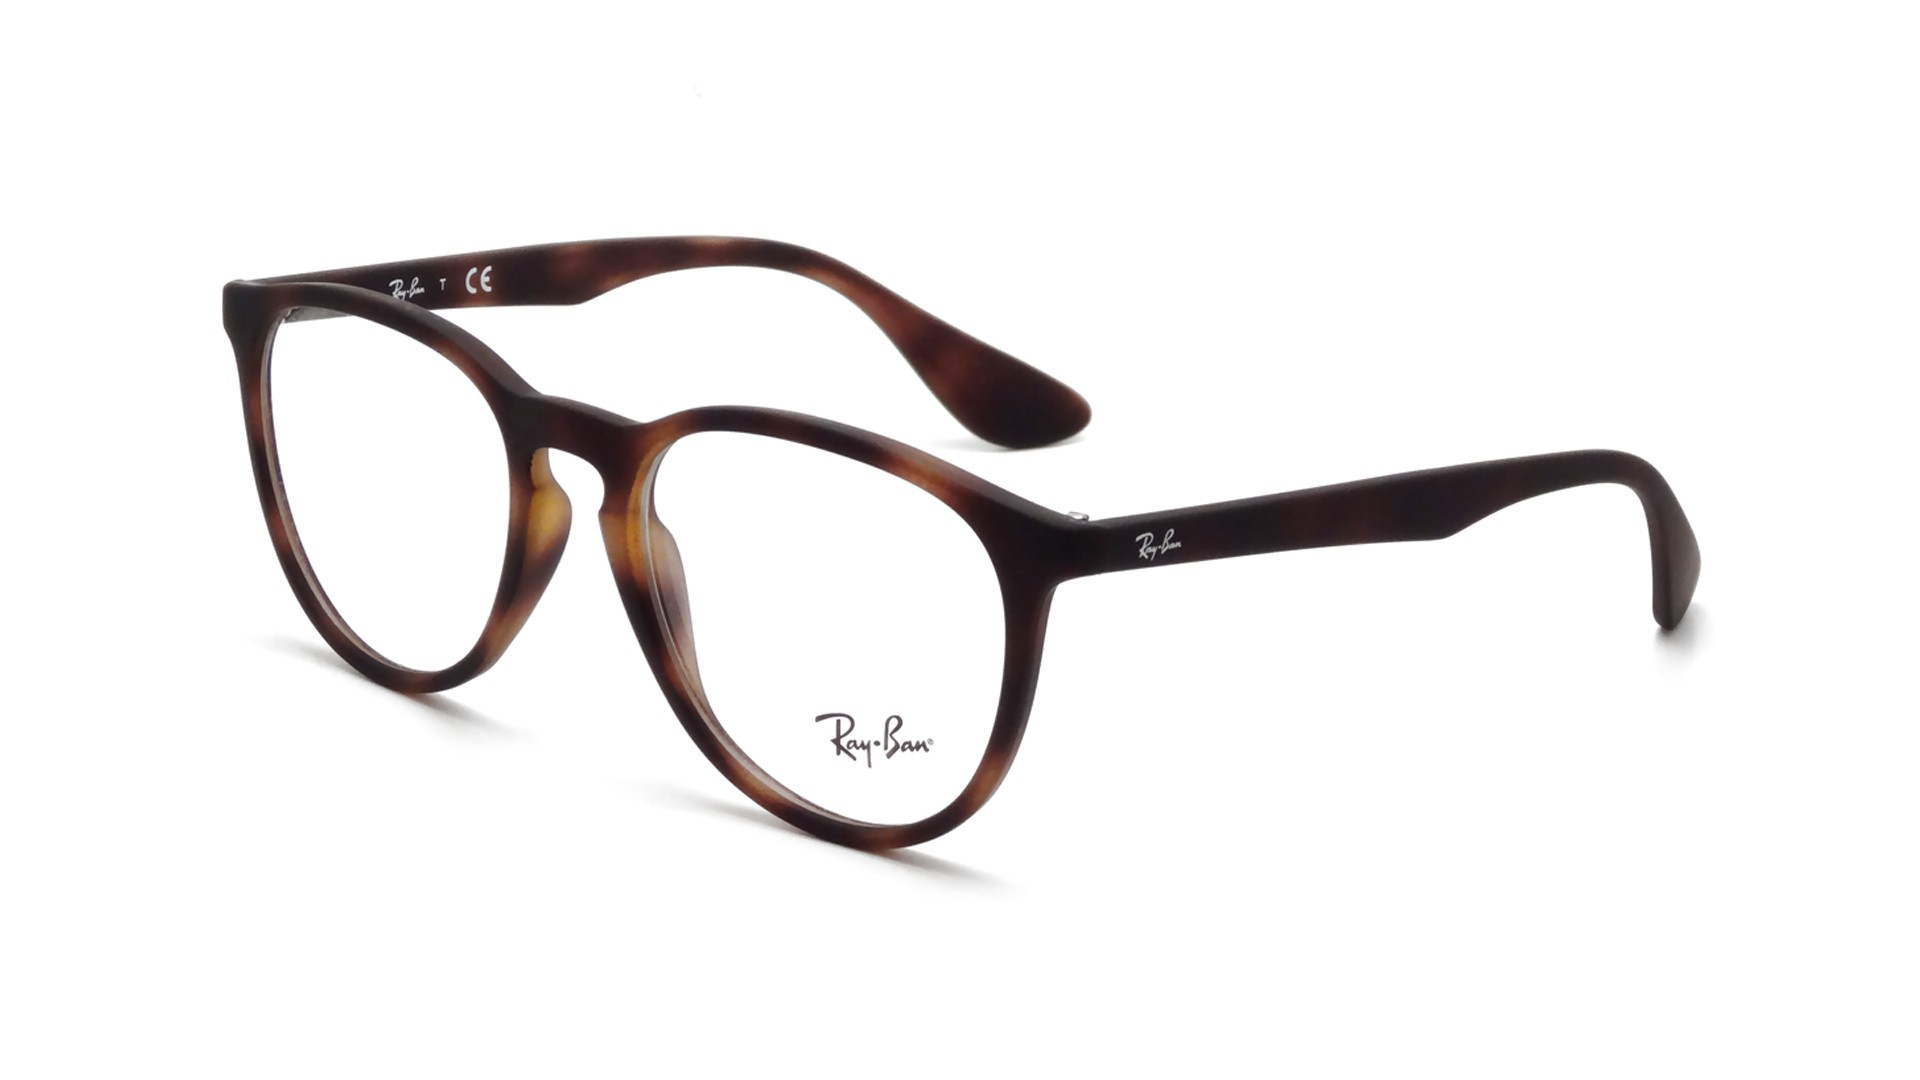 92674461d3 Ray Ban Rx7046 « Heritage Malta